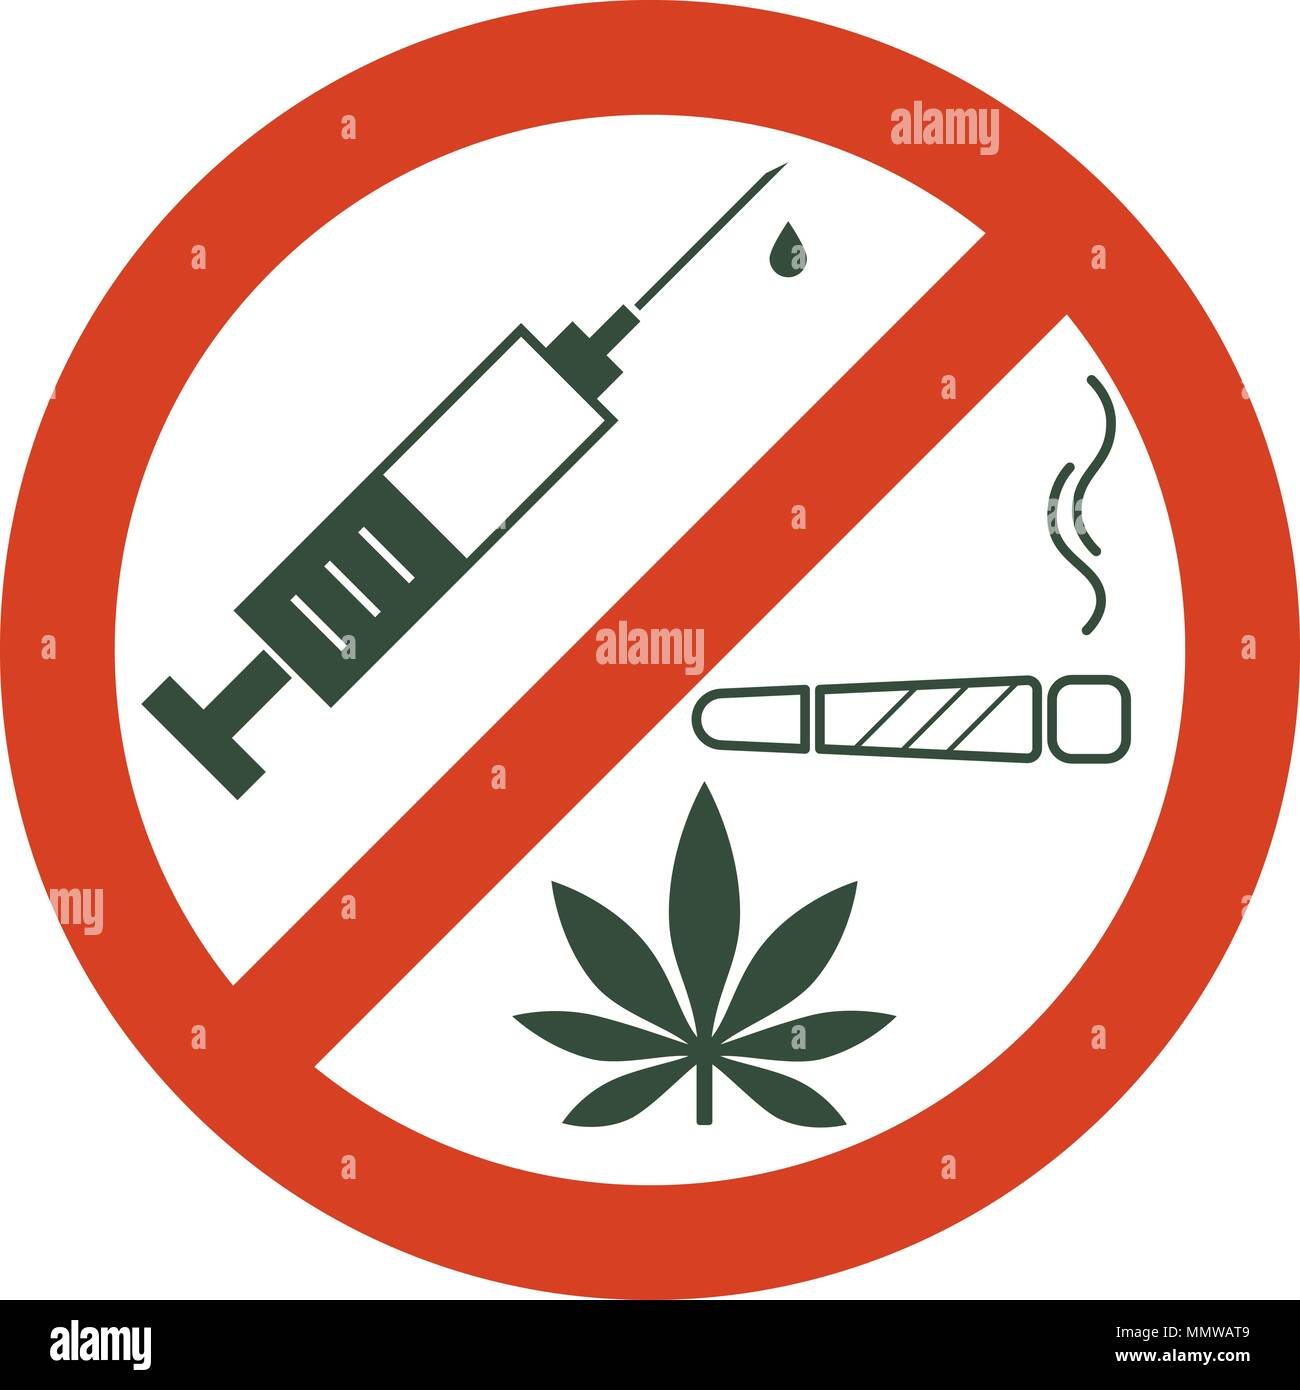 No drugs allowed. Drugs, marijuana leaf with forbidden sign - no drug. Drugs icon in prohibition red circle. Anti drugs. Just say no. Isolated vector  - Stock Image